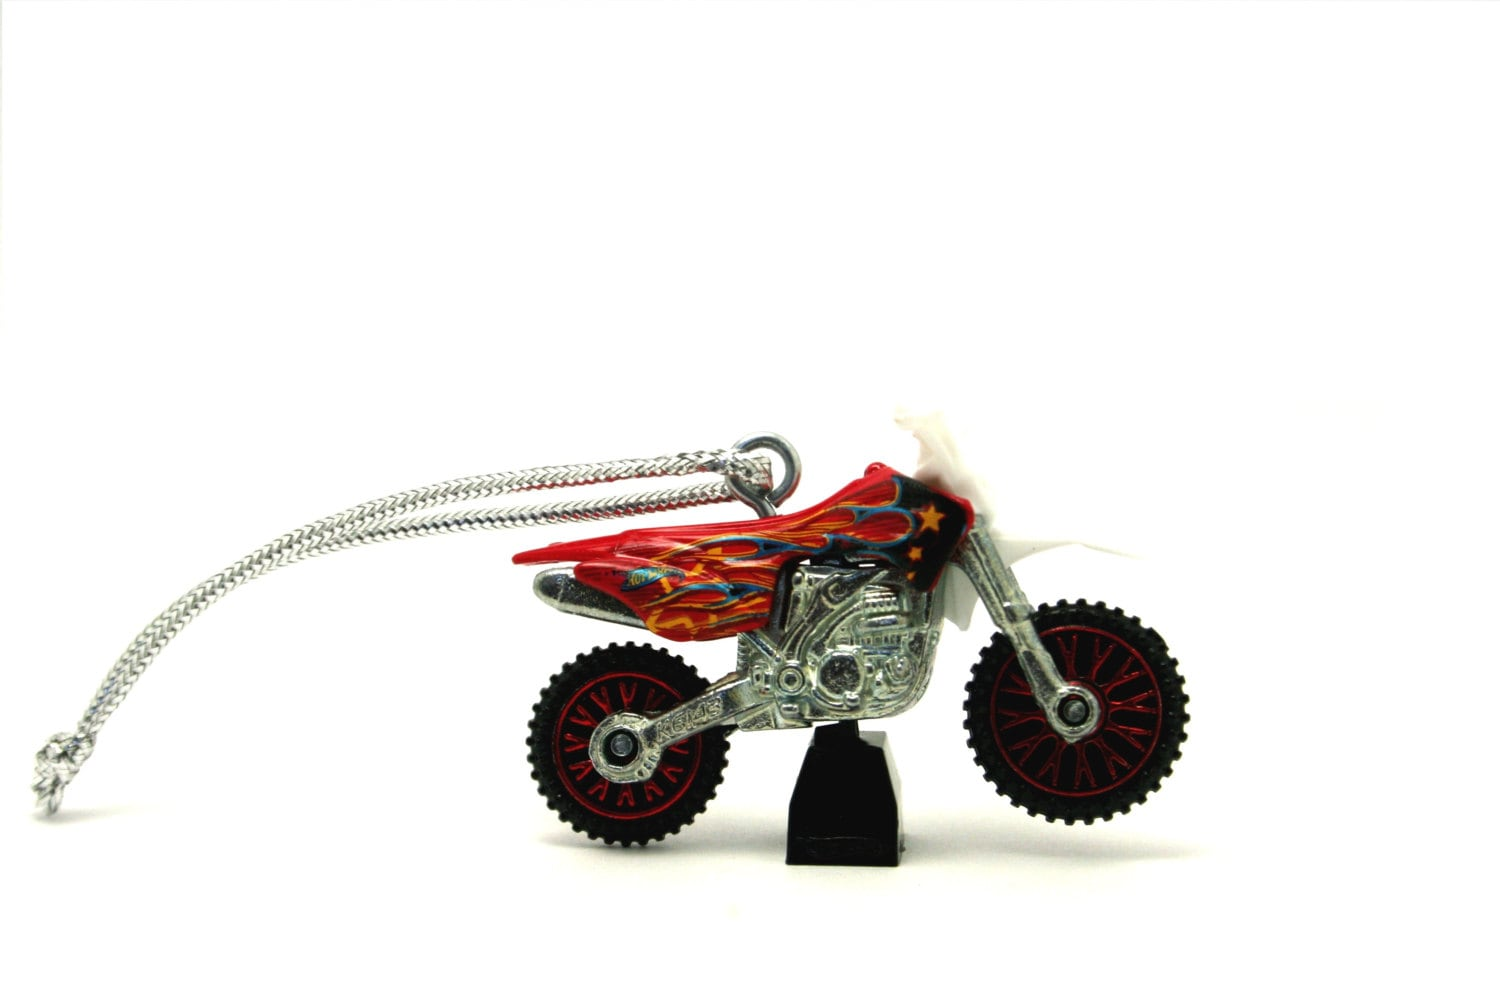 dirt bike hot wheels ornament. Black Bedroom Furniture Sets. Home Design Ideas